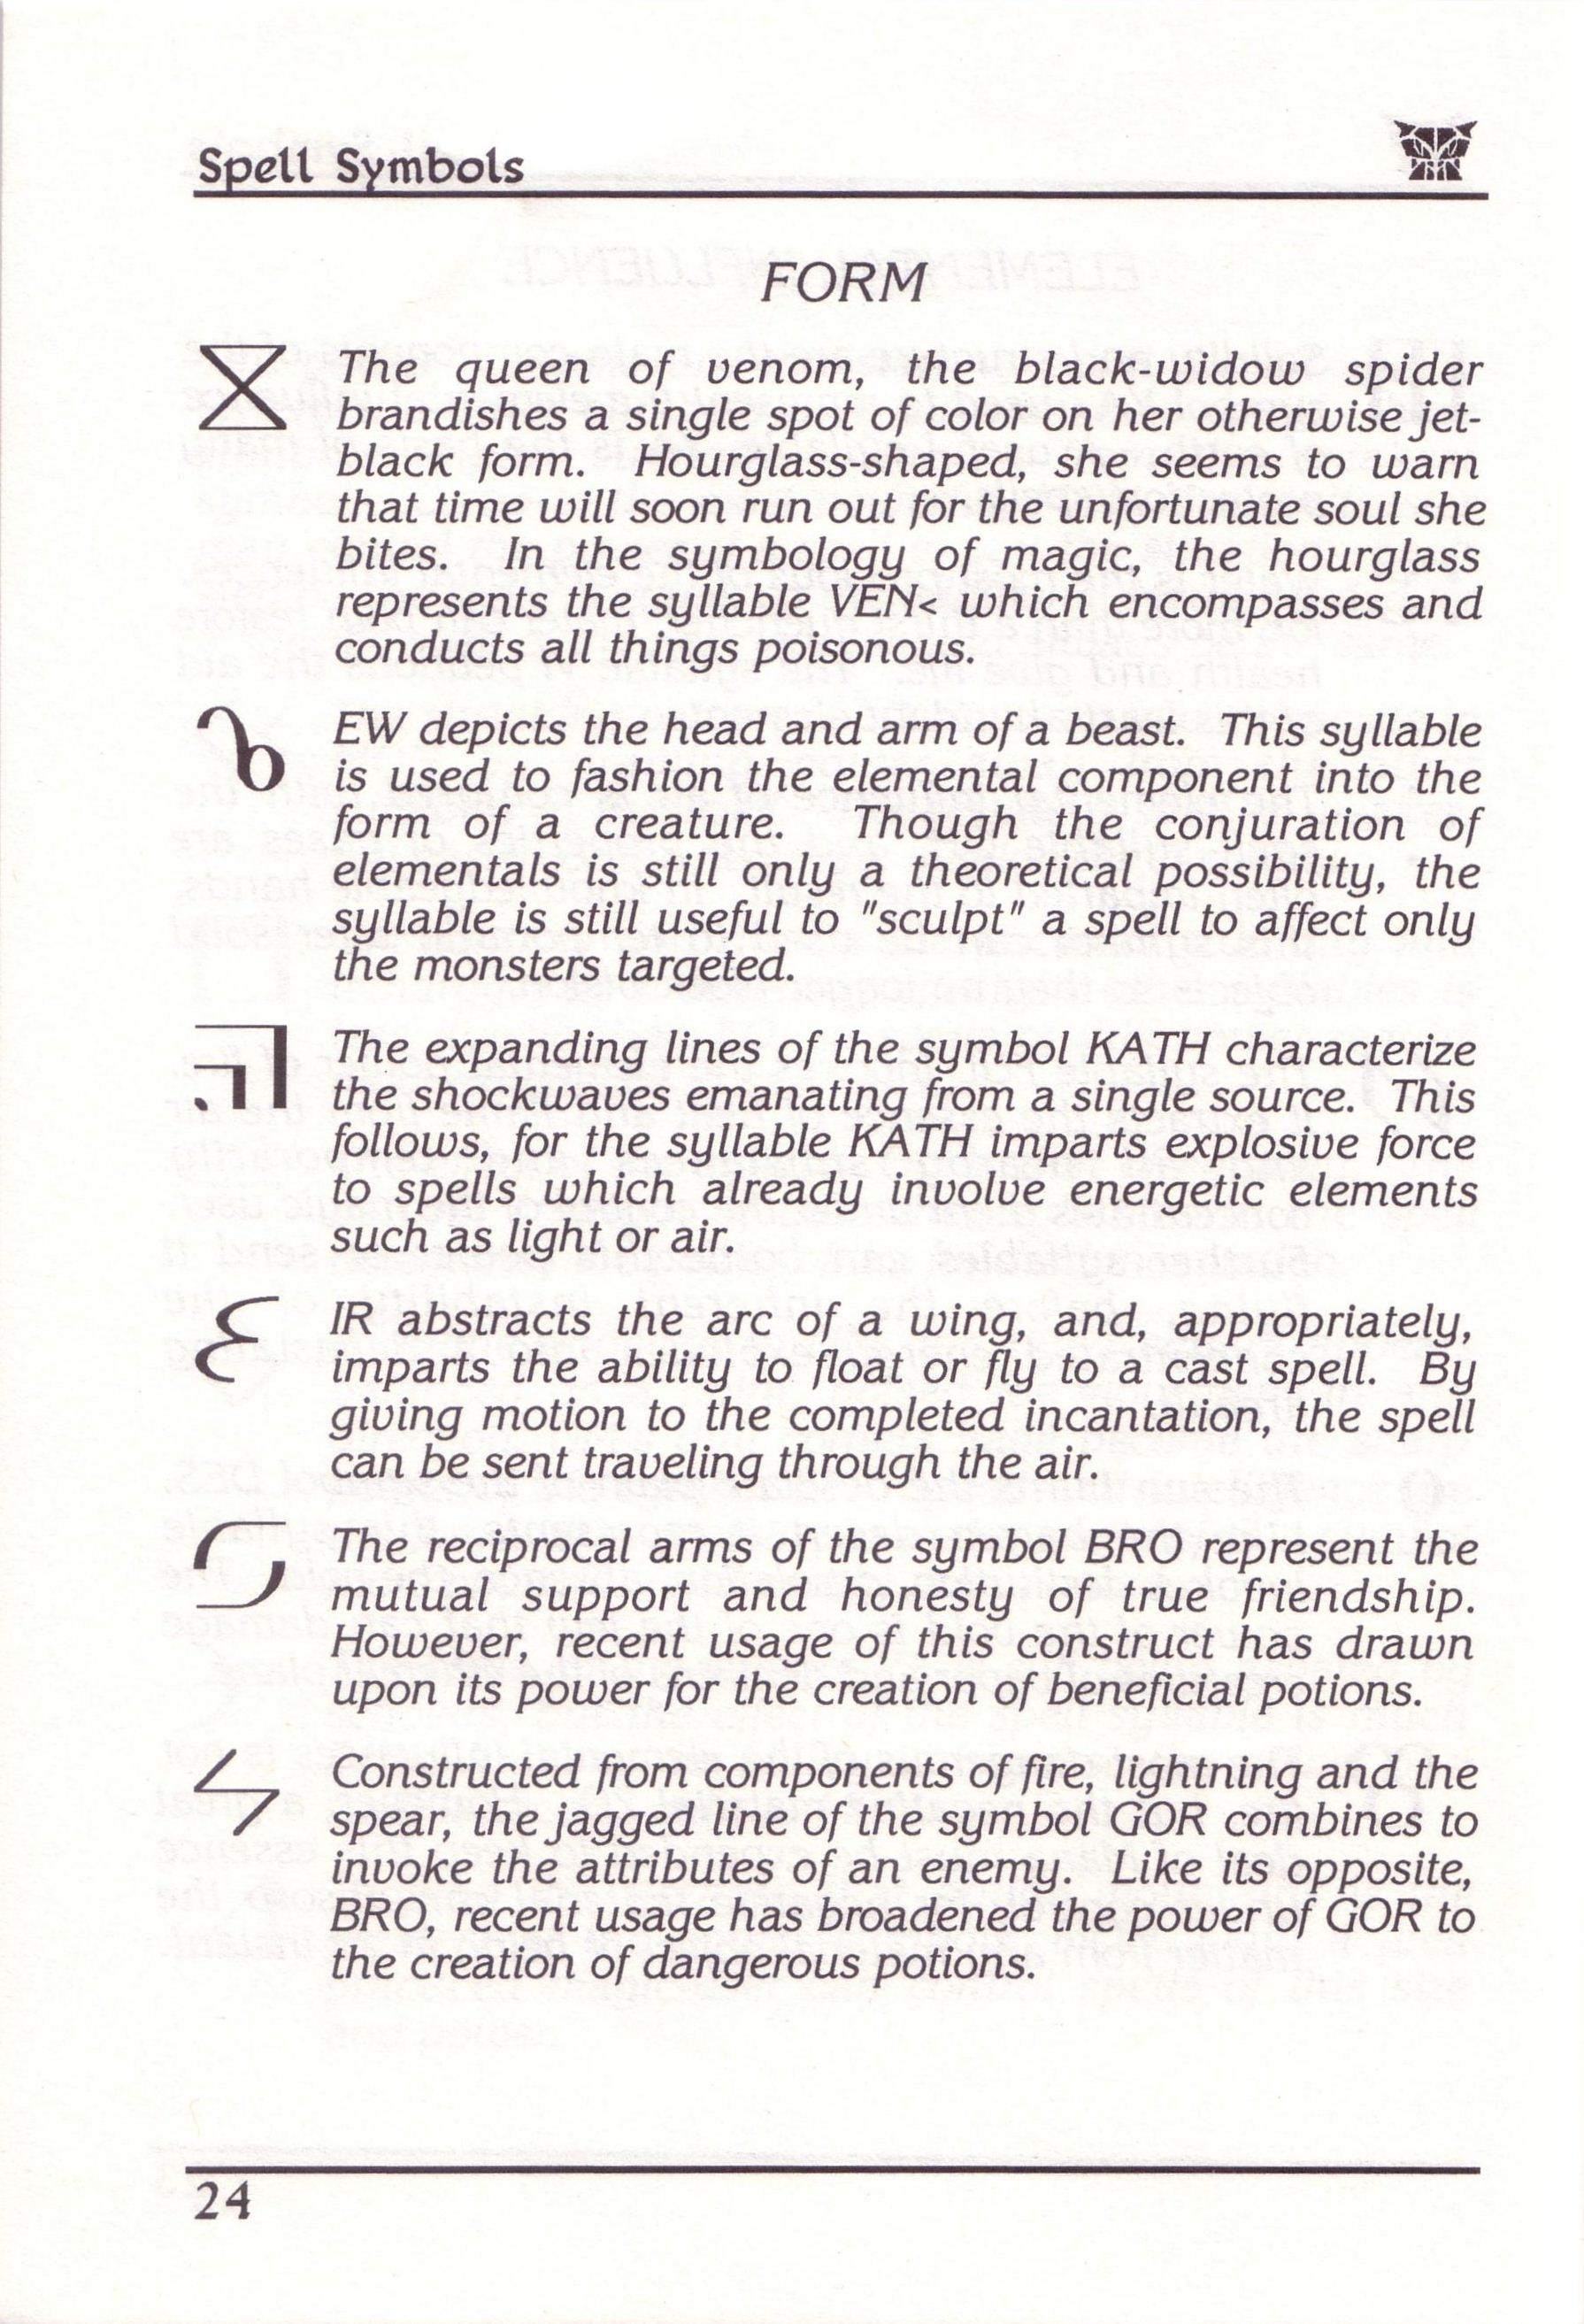 Dungeon Master for PC with FTL Sound Adapter (US Release) - Manual Page 48